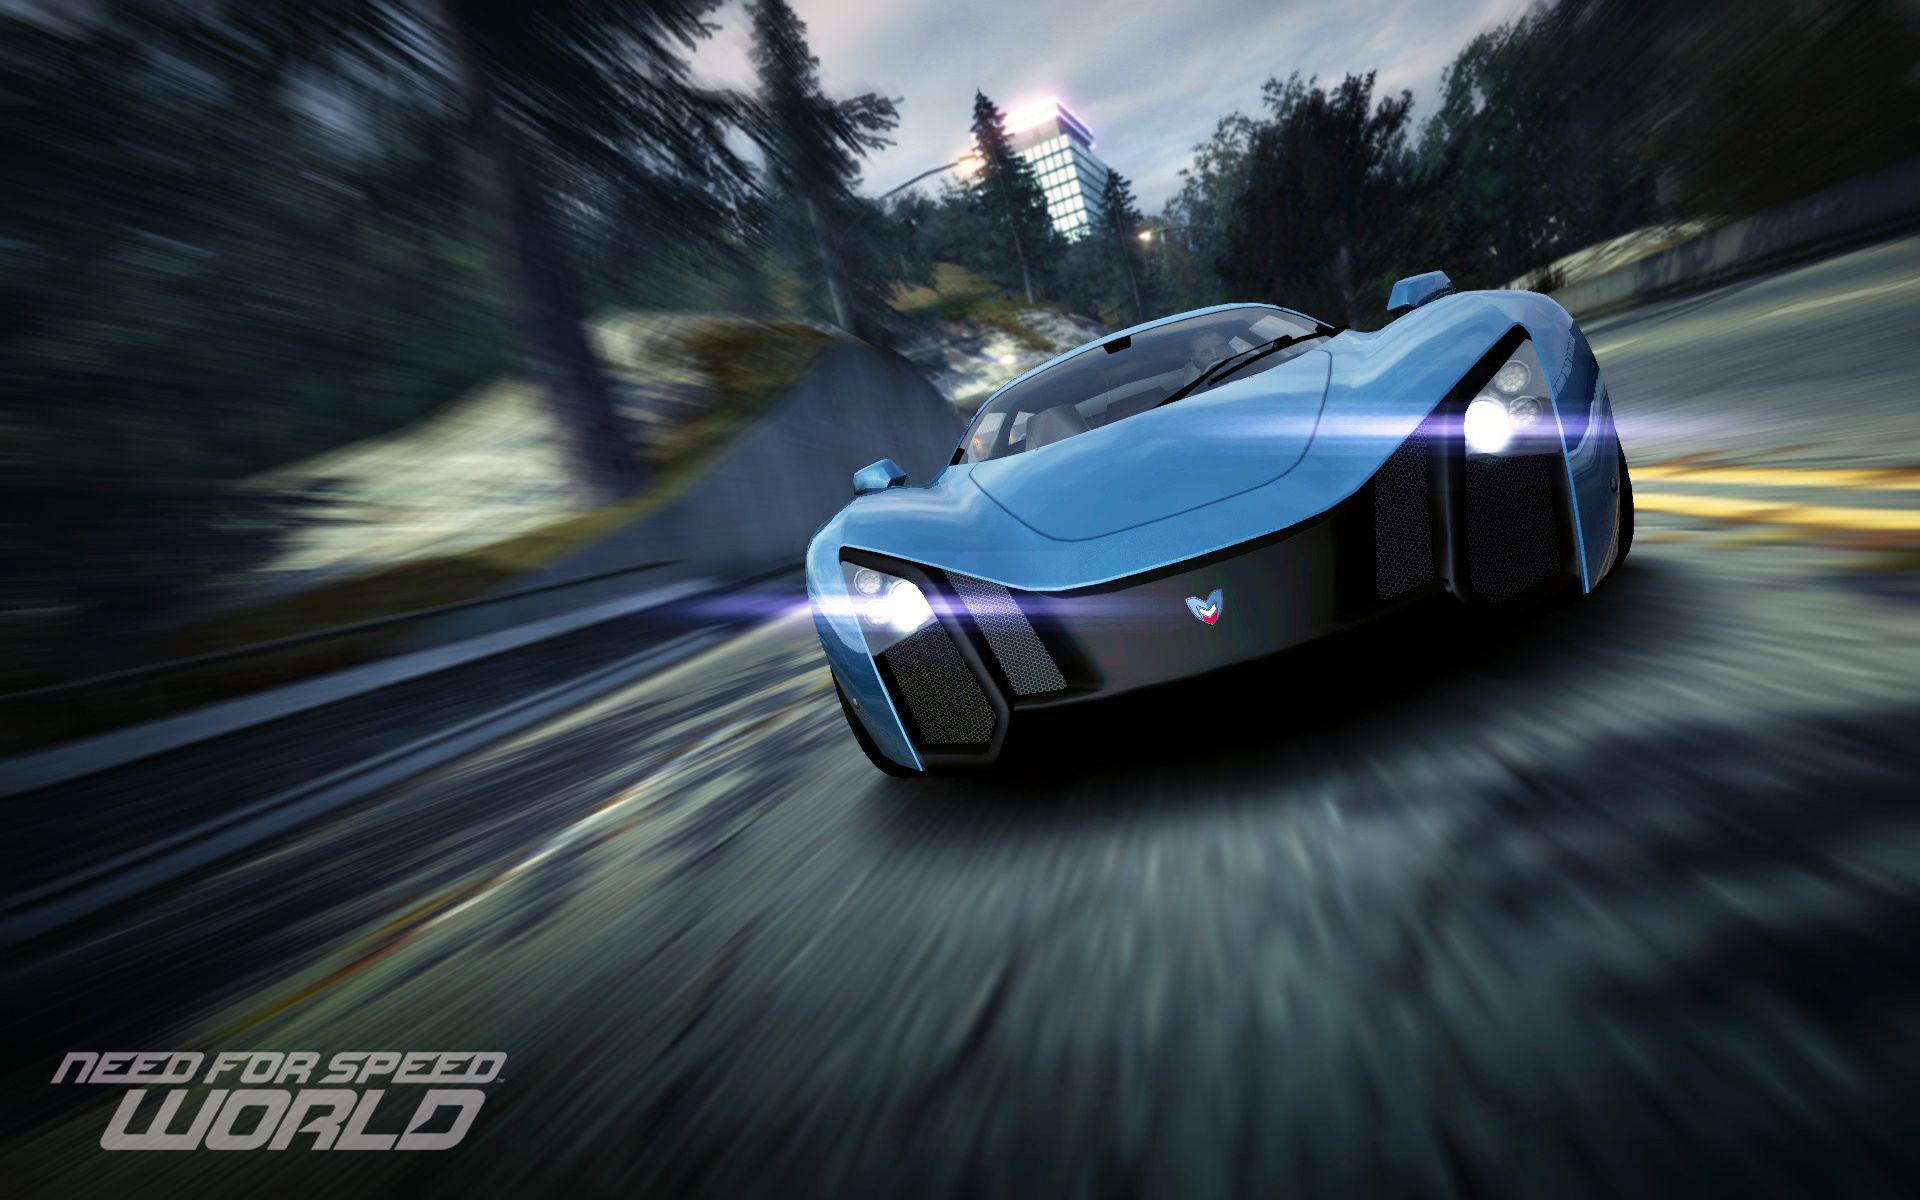 Need For Speed World Marussia B2 Wallpaper Gb Hd Wallpapers Need For Speed World Wallpaper Racing